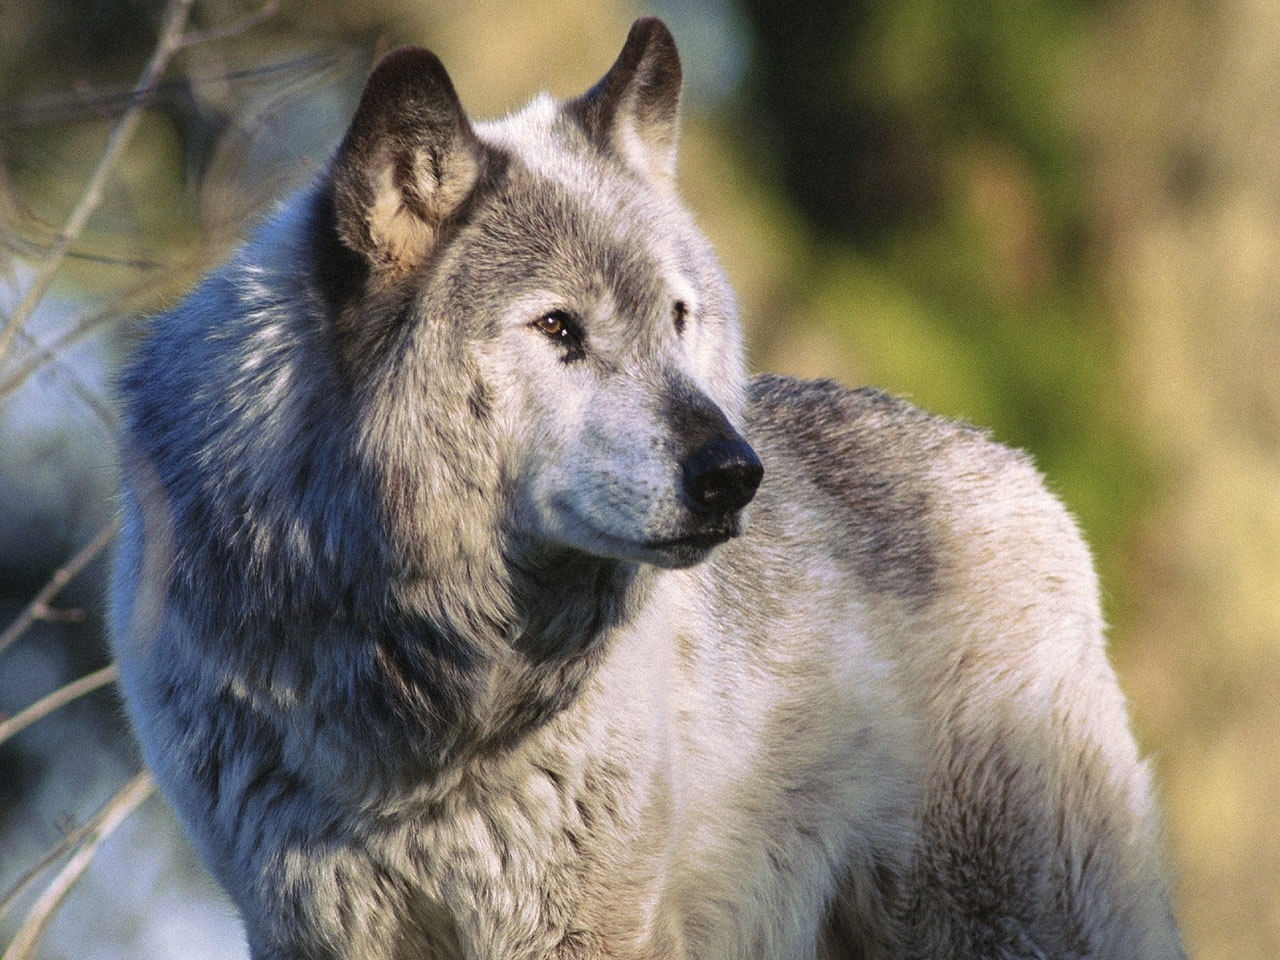 40856 download wallpaper Animals, Wolfs screensavers and pictures for free